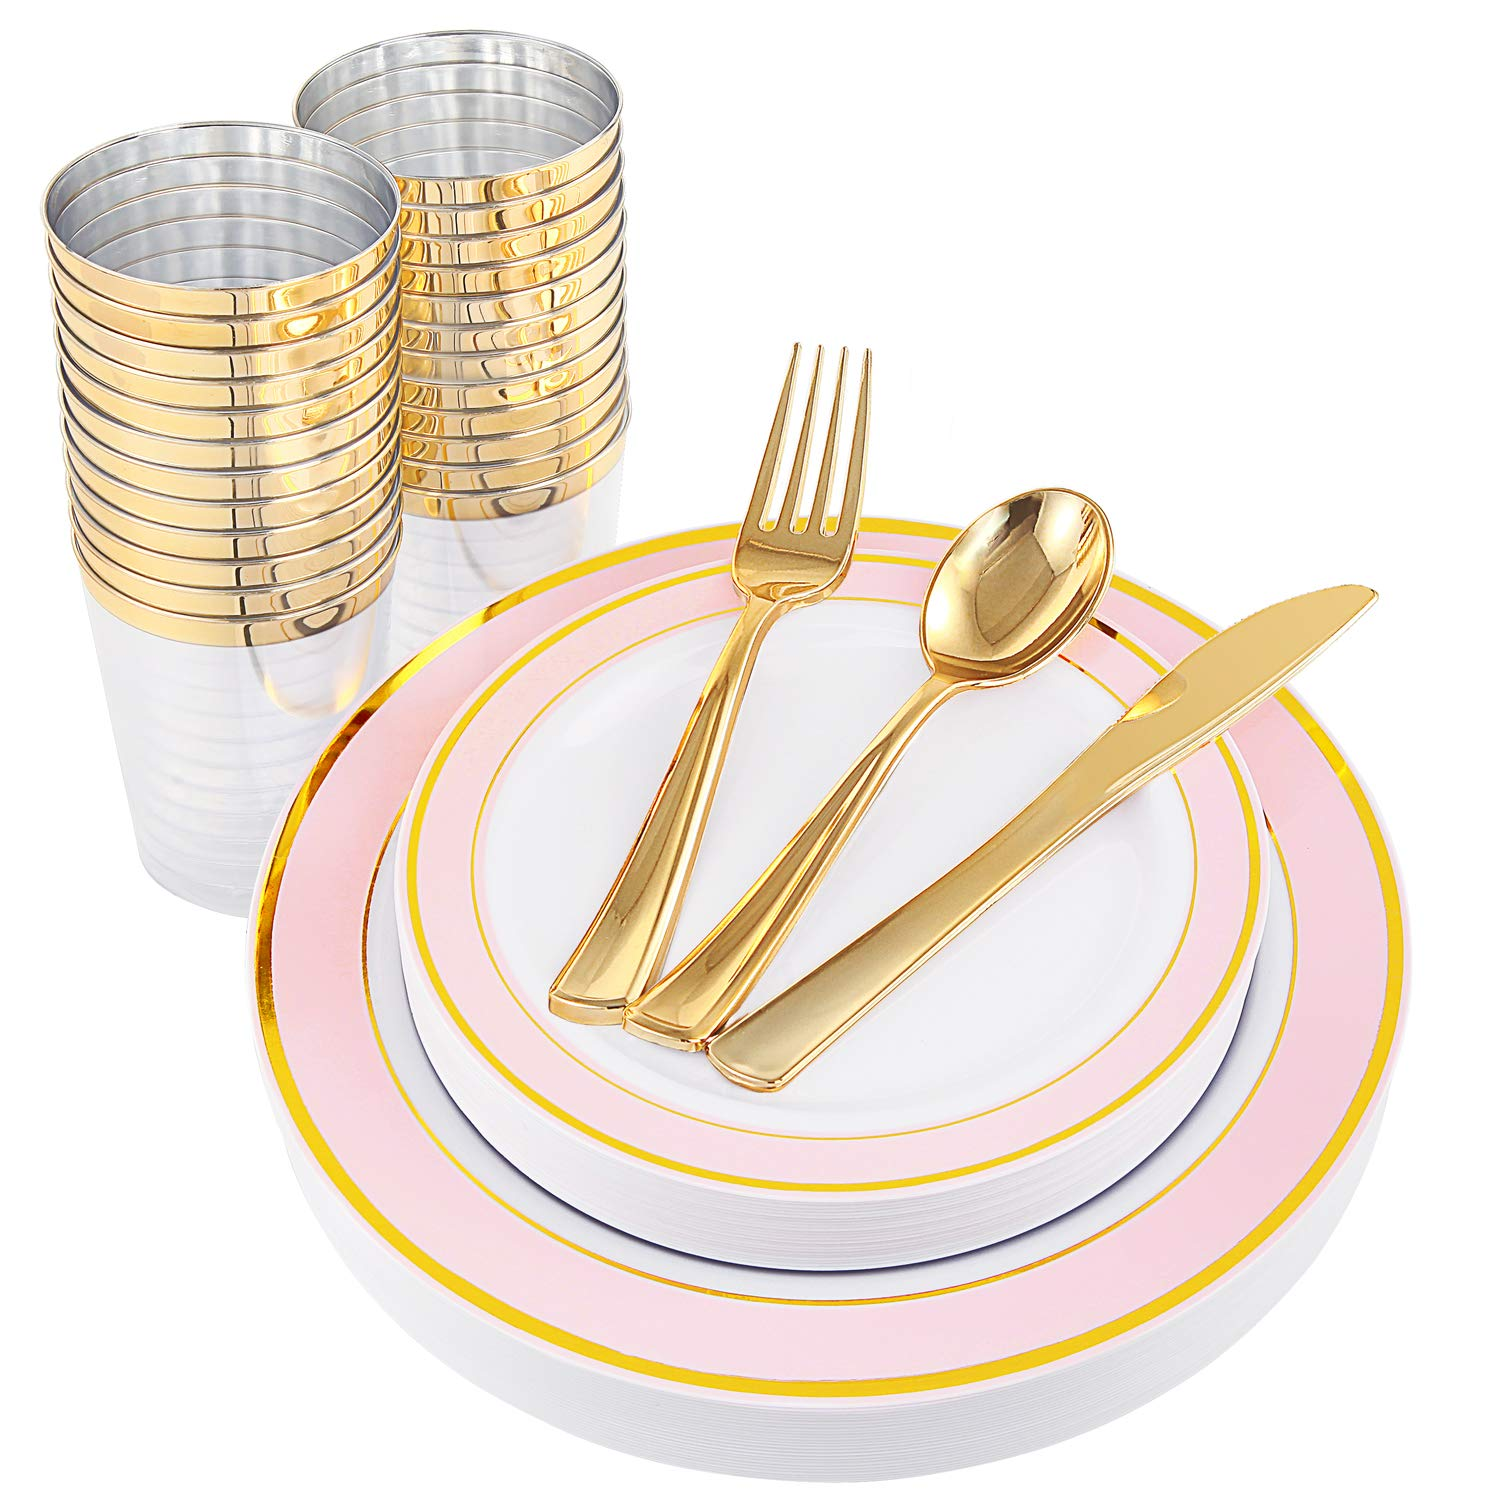 NERVURE 25 Guest Gold Plastic Plates with Gold Silverware,Disposable Cups-Include 25 Dinner Plates, 25 Dessert Plates, 25 Forks, 25 Knives, 25 Spoons & 10 oz Plastic Cups (Pink) by NERVURE